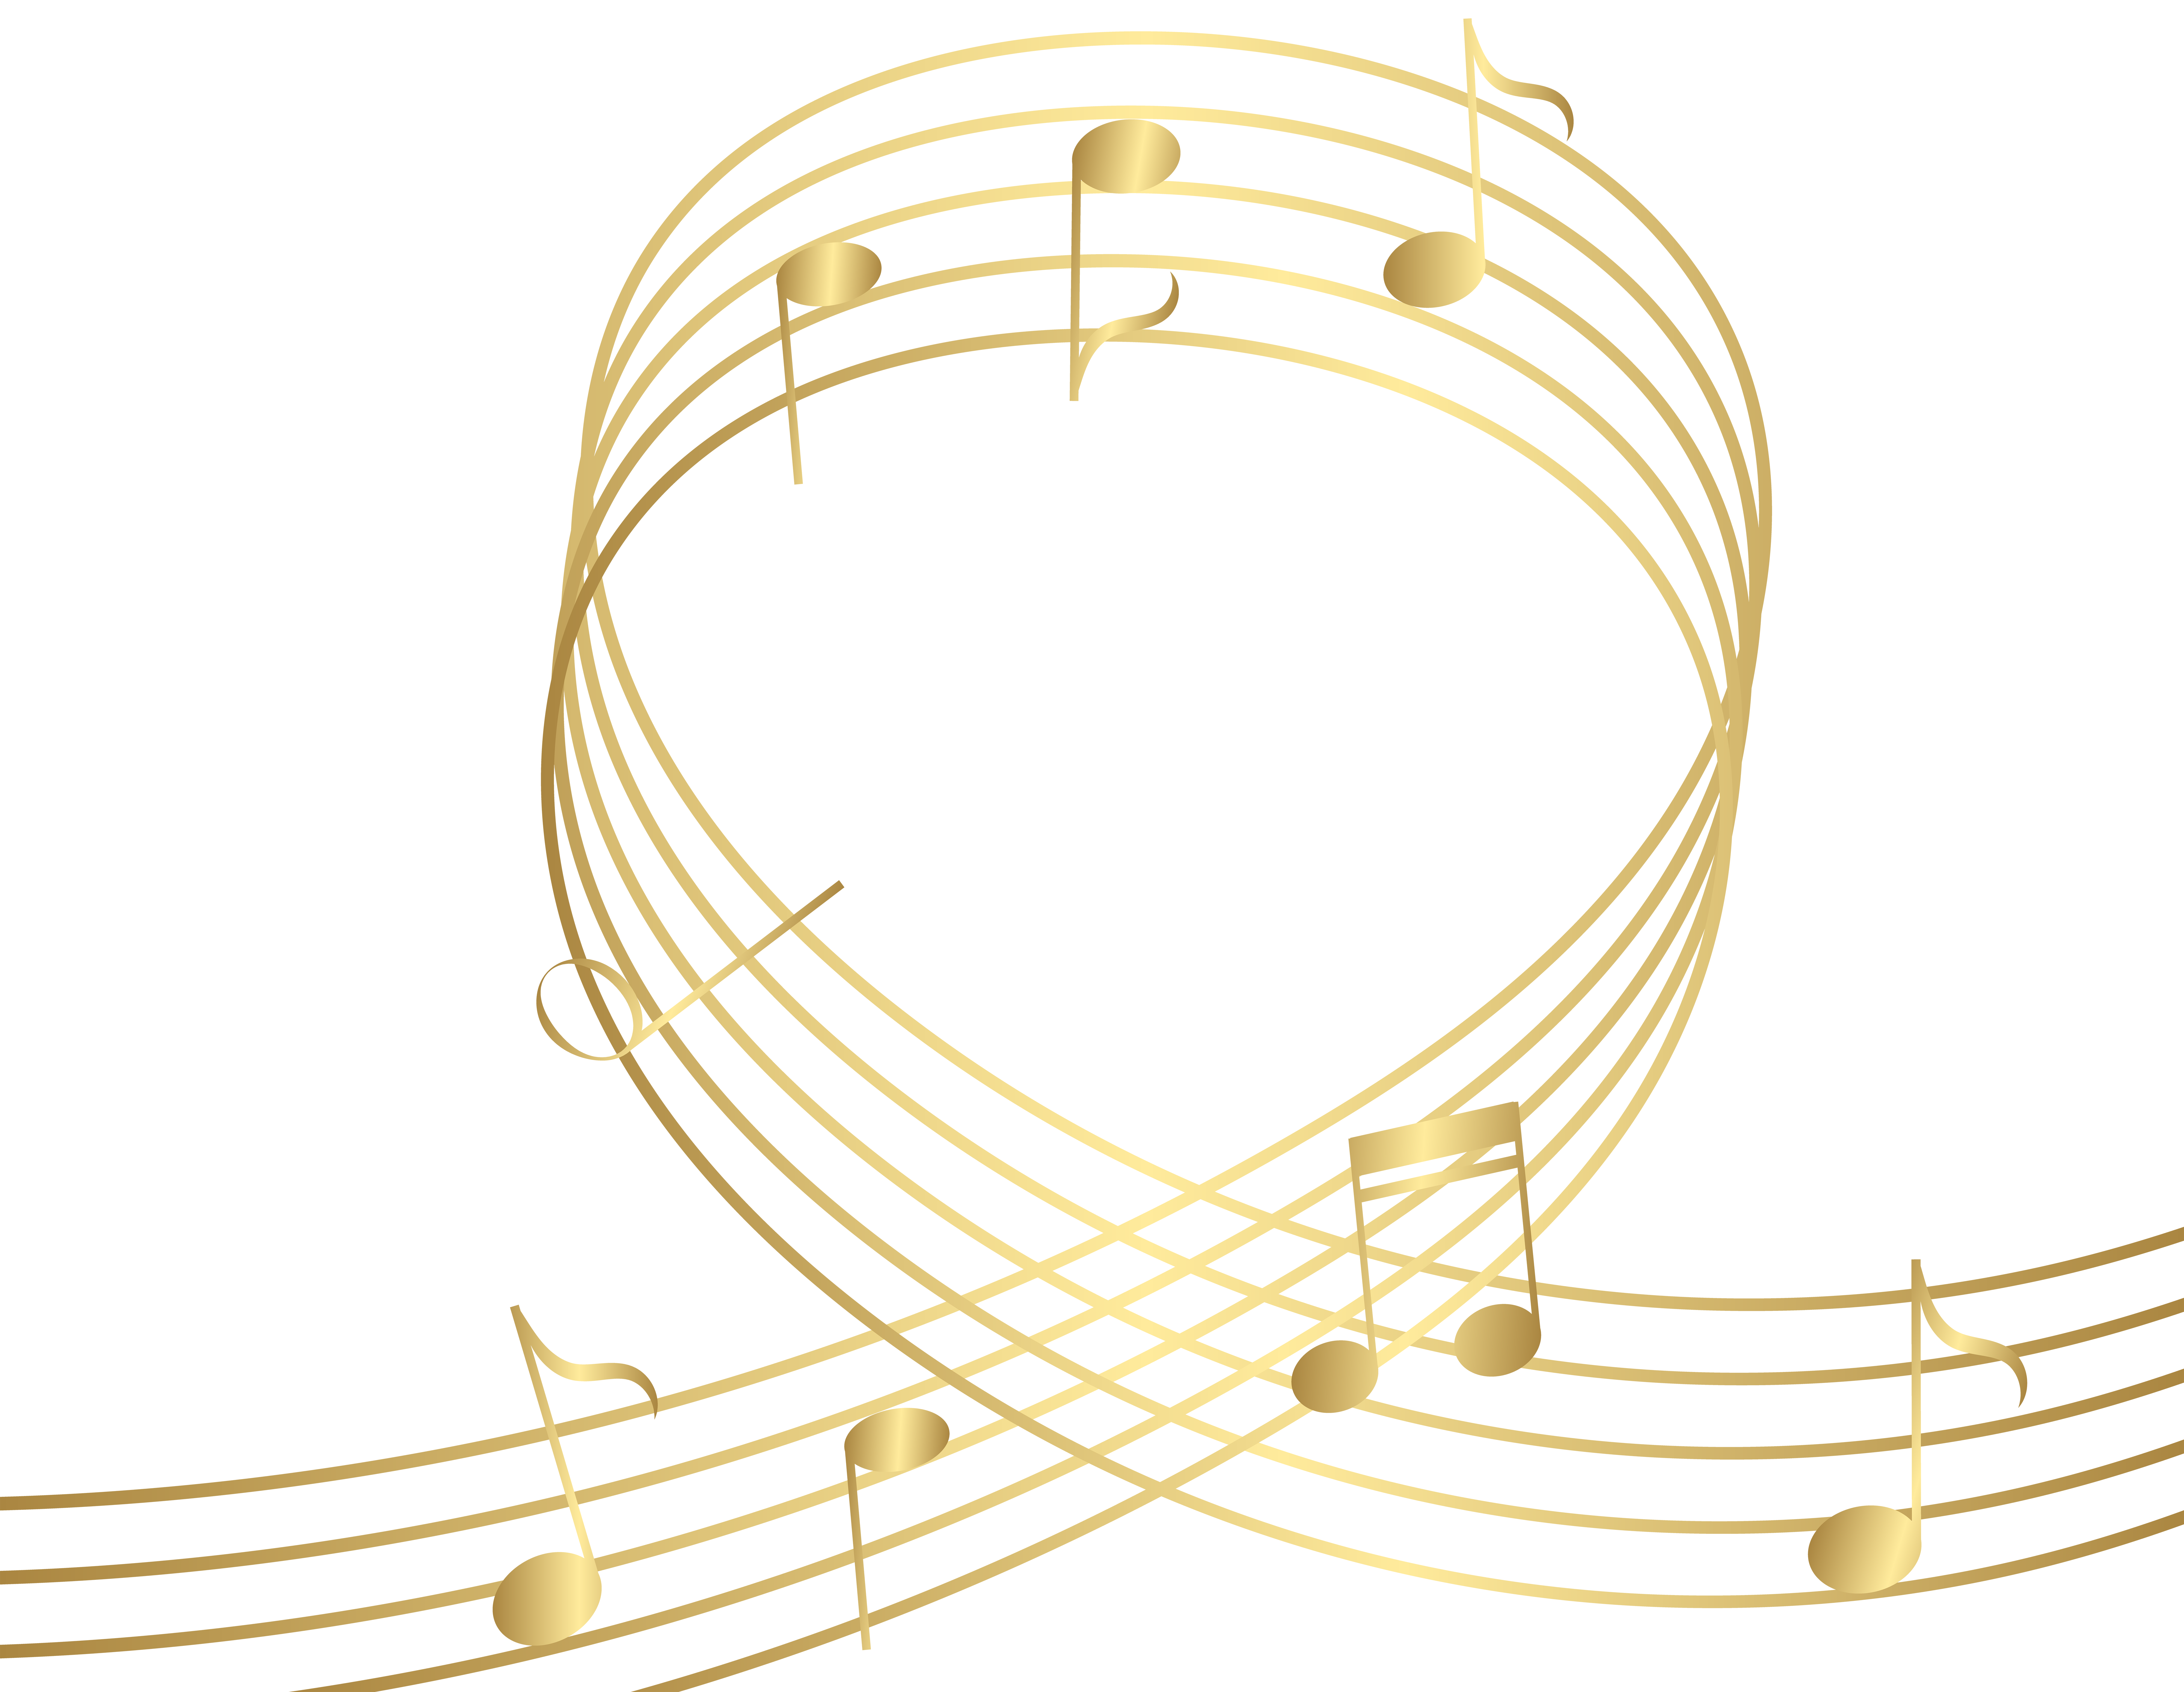 Golden music note png. Gld notes transparent clip